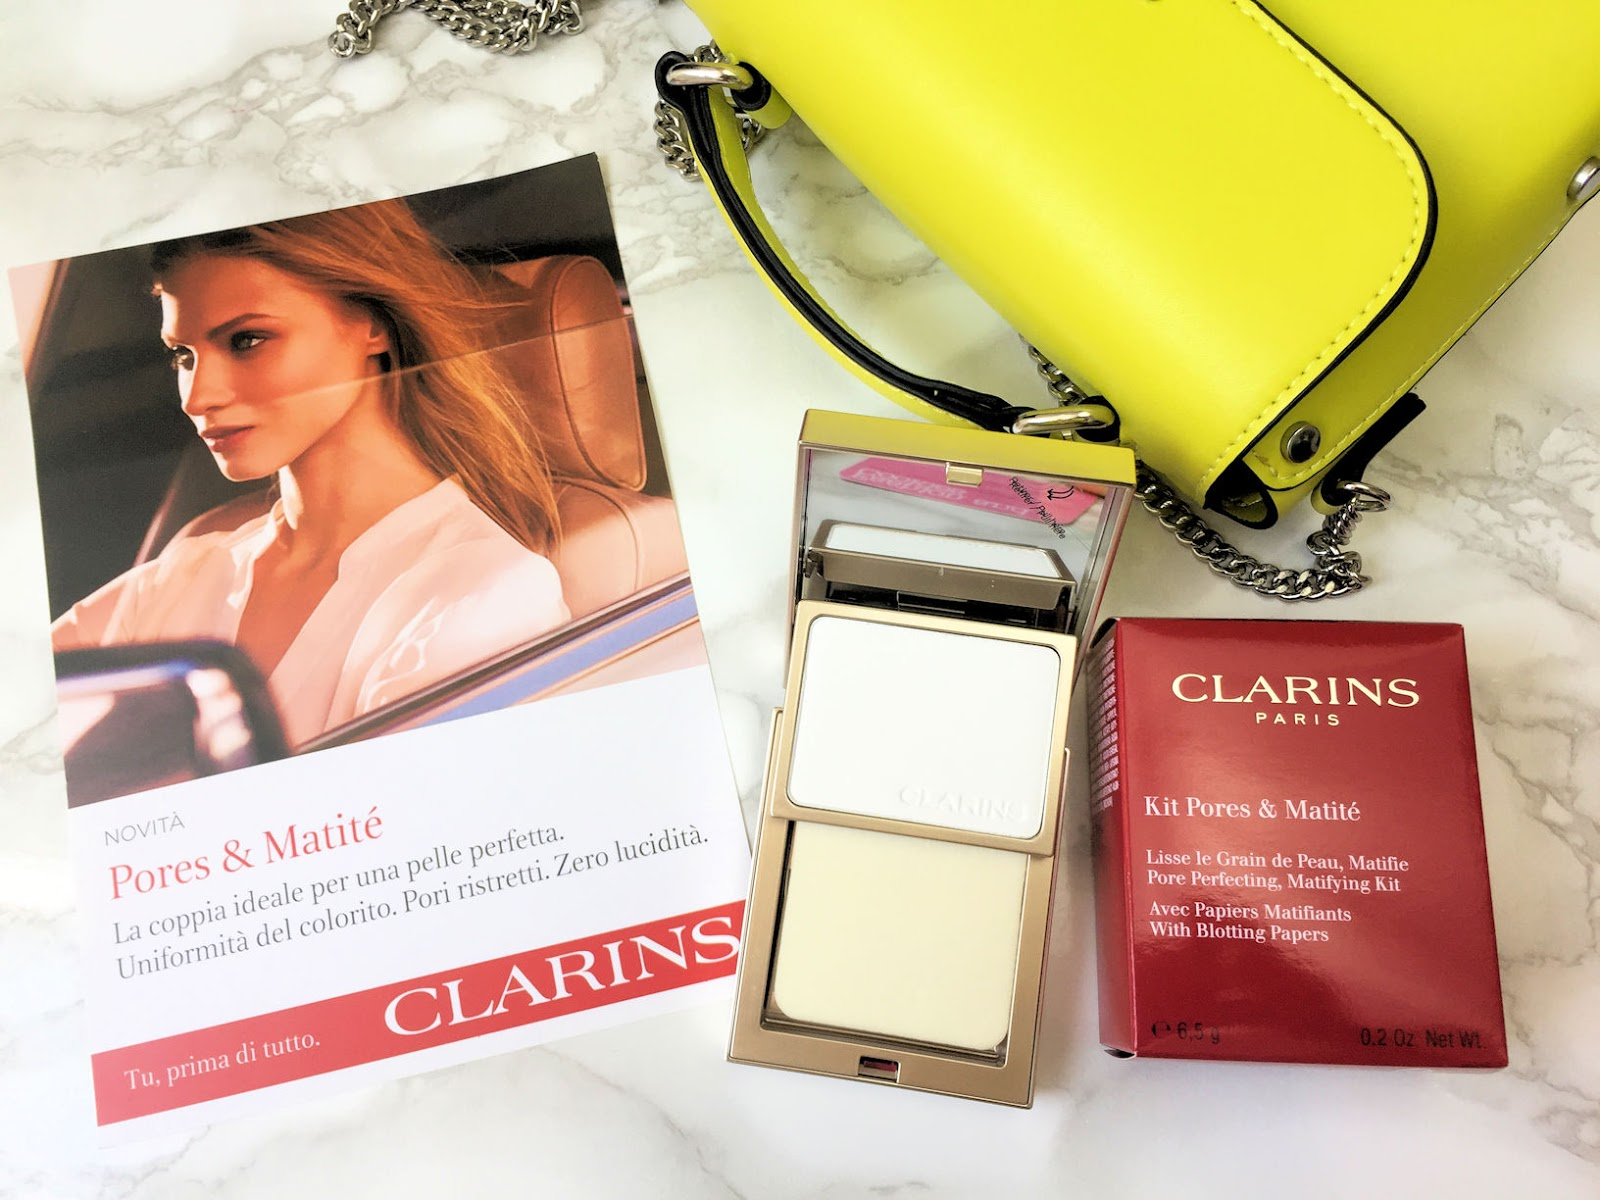 Clarins Duo Effetto Mat Pores & Matité, trucco per selfie migliori su Fashion and Cookies beauty blog, beauty blogger